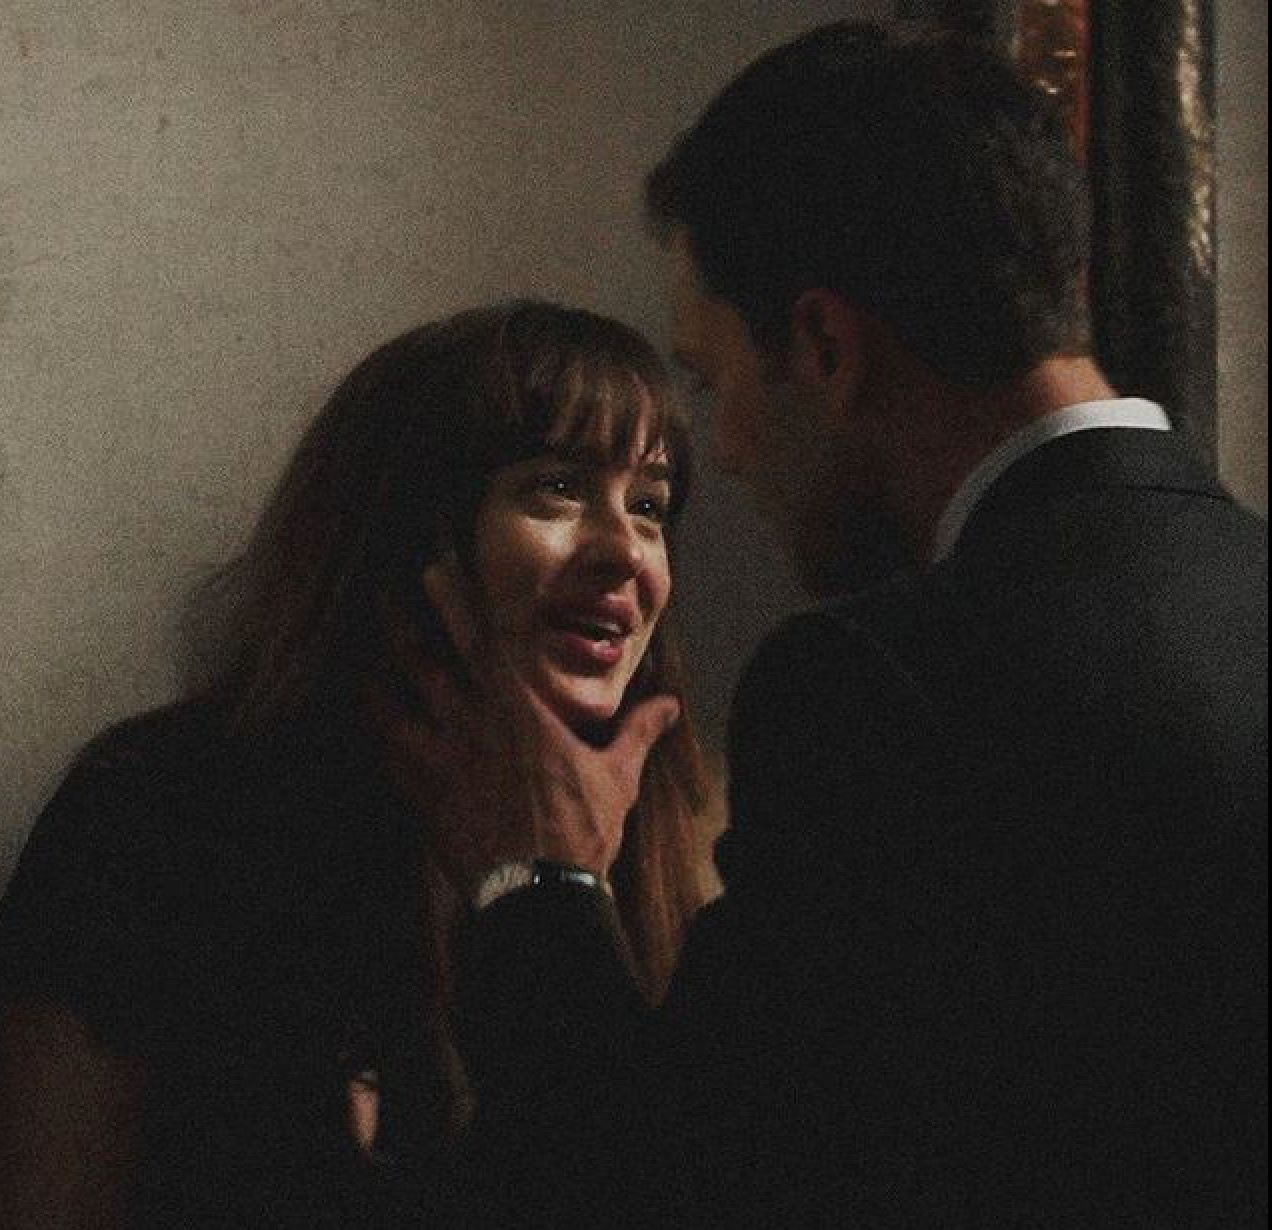 Pin By Pilar Rodriguez On Fifty Shades Darker Fifty Shades Movie Fifty Shades Darker Fifty Shades